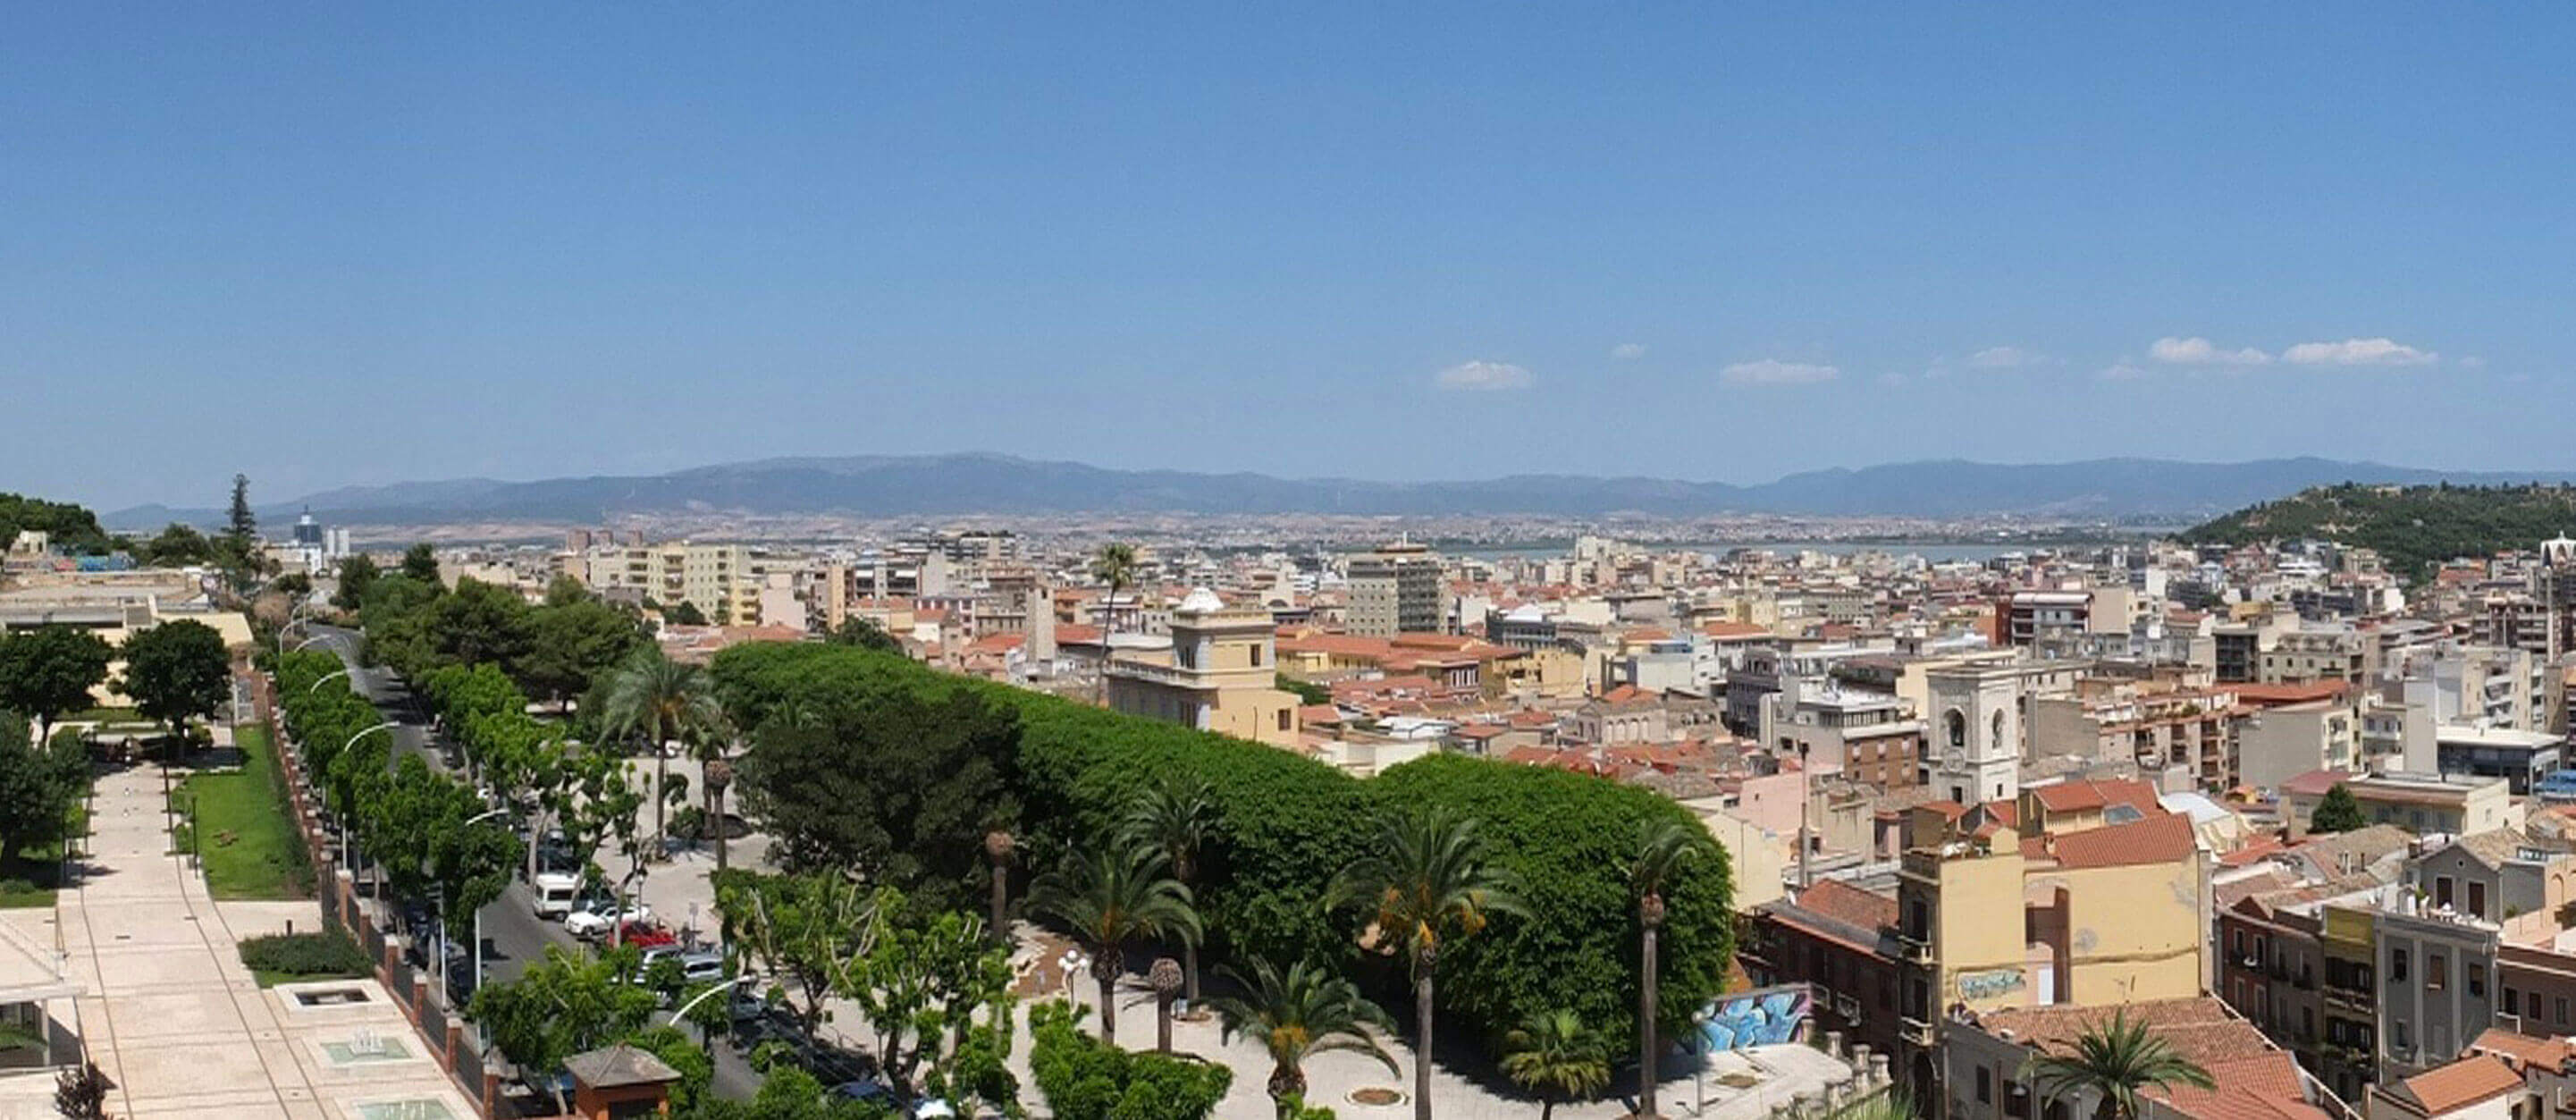 10 things to see in cagliari